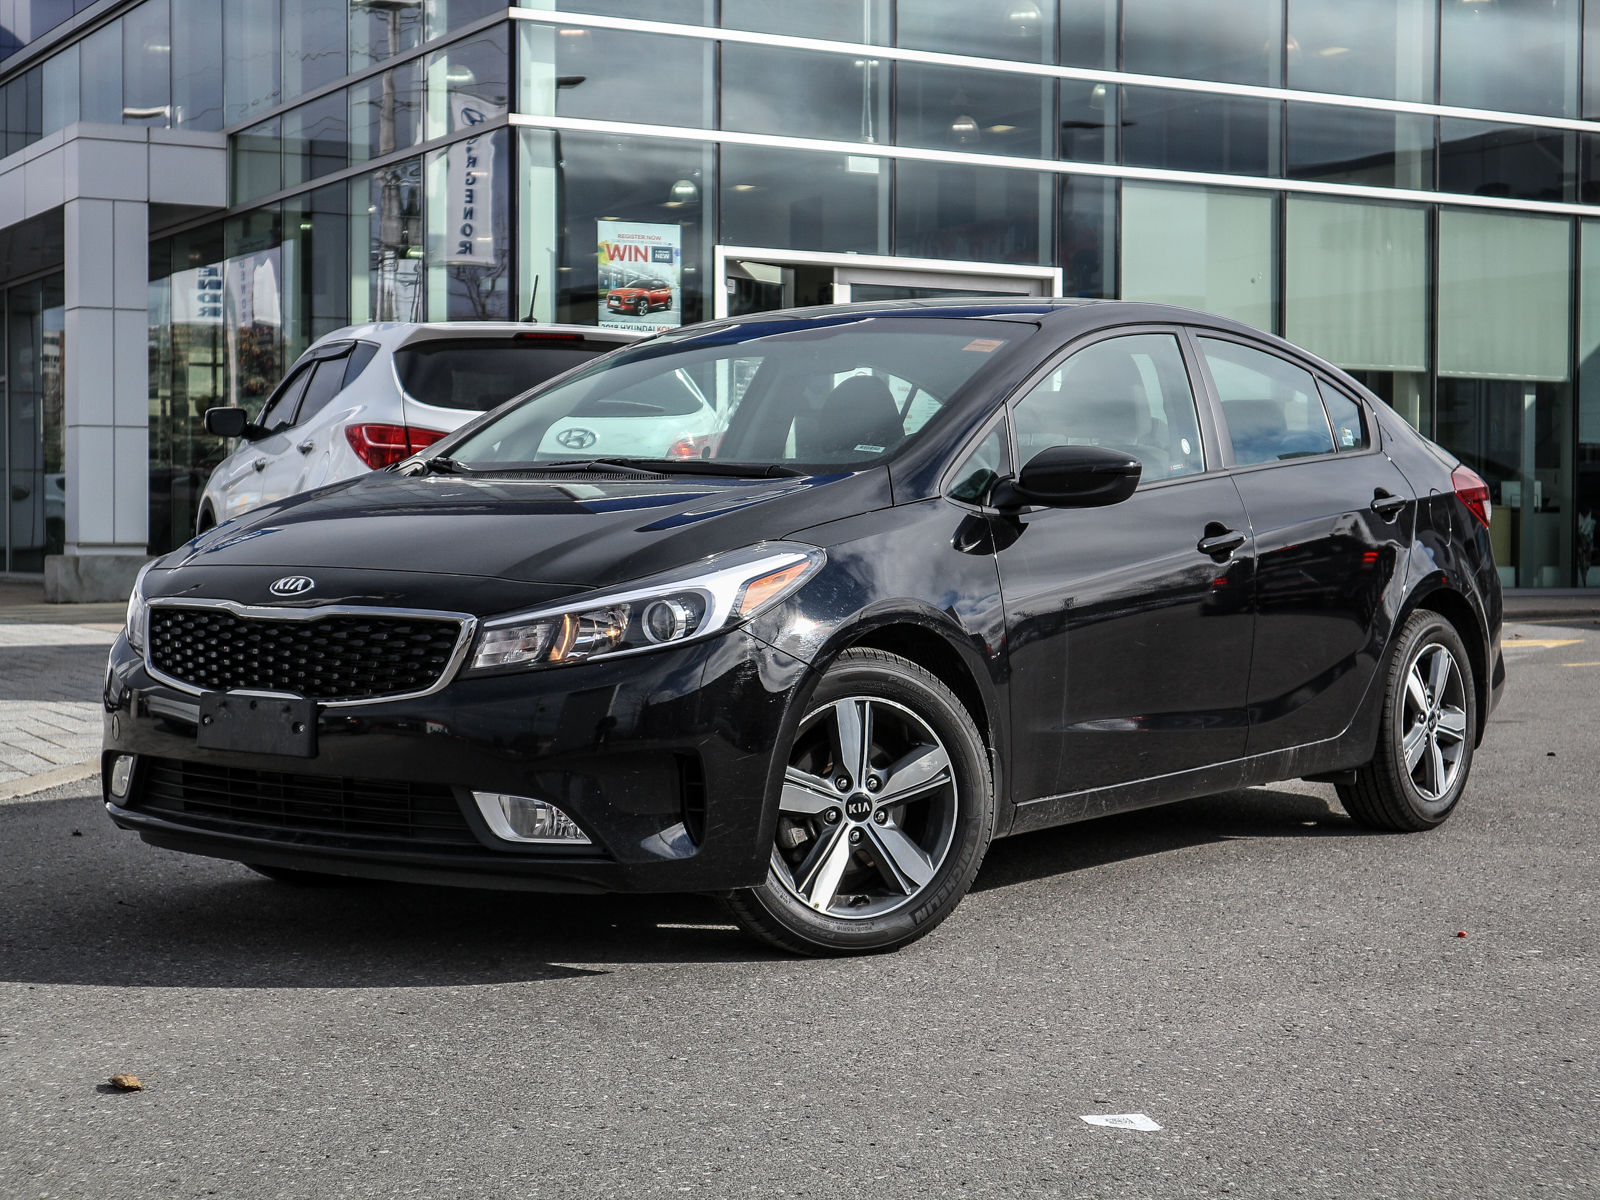 Used 2018 Kia Forte Lx For Sale 156990 Surgenor Automotive Group Wheels